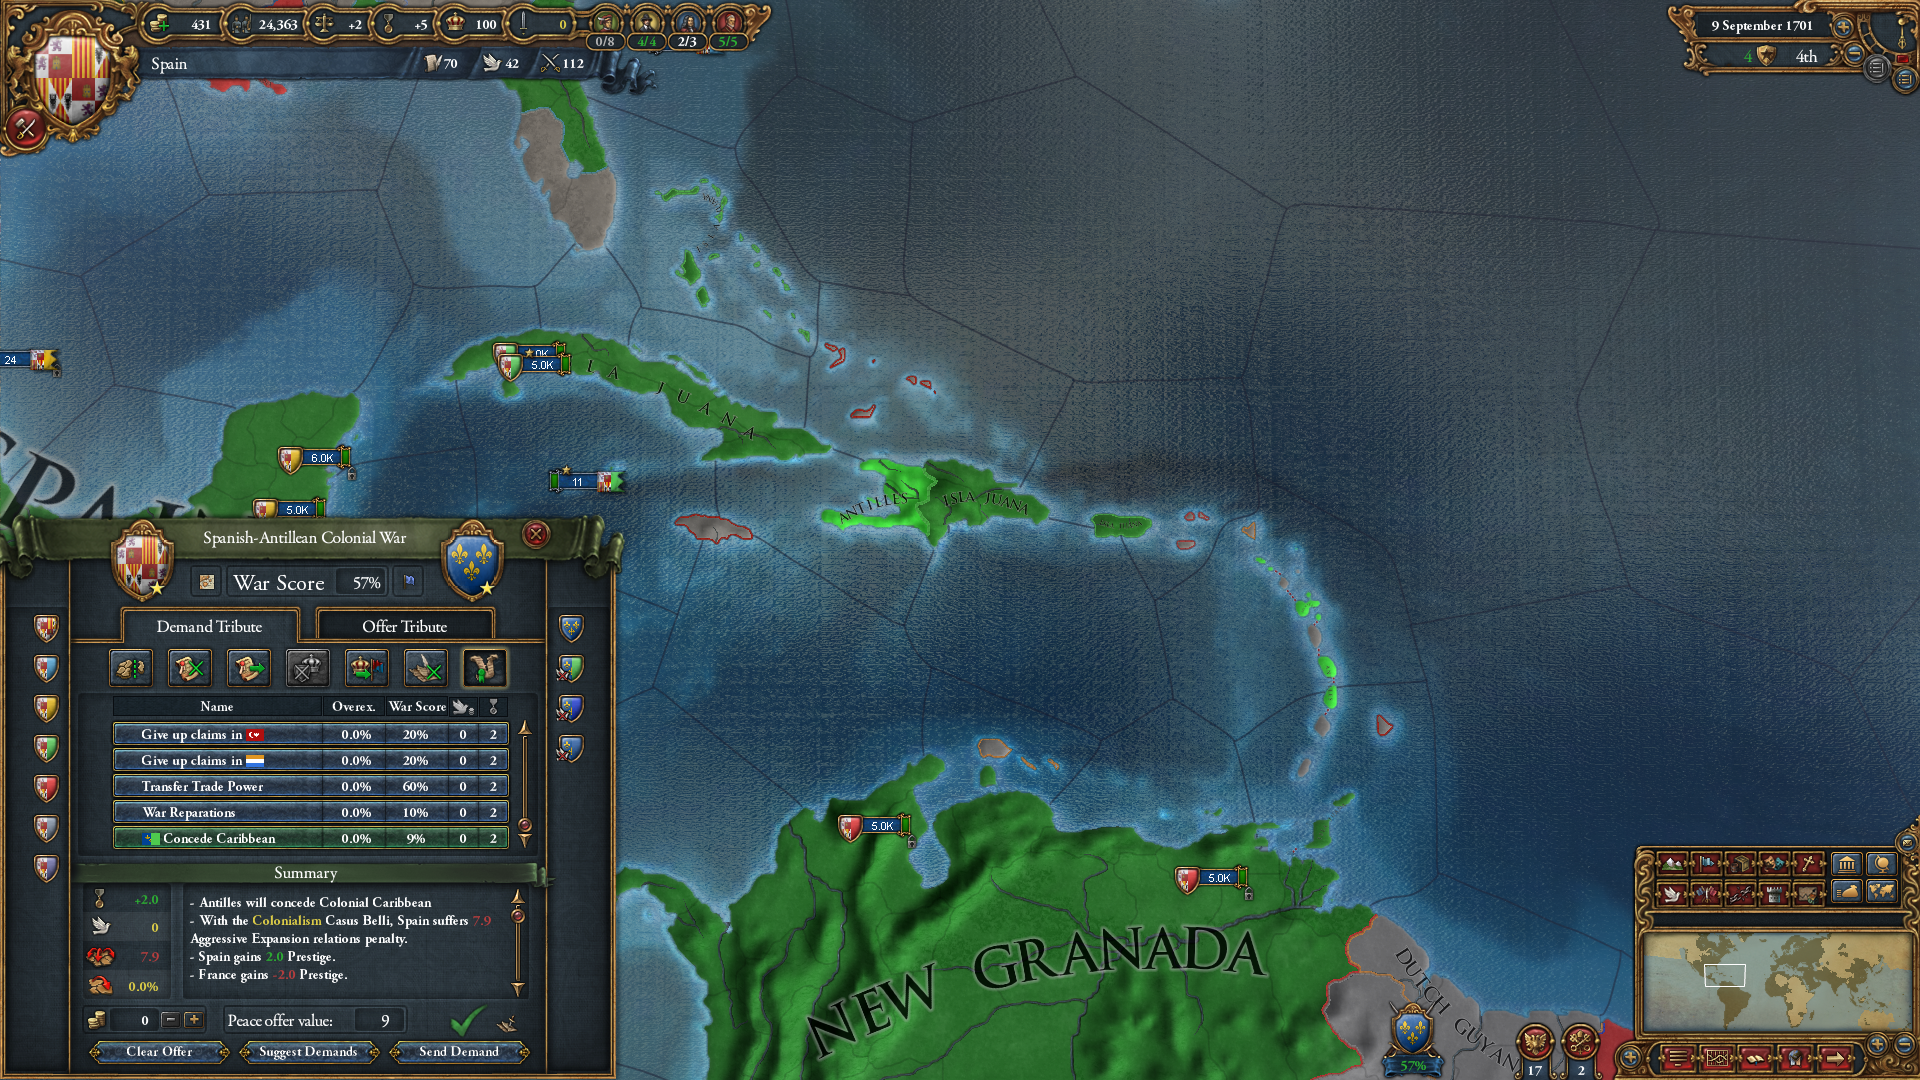 Europa Universalis IV: The Cossacks - Expansion | ROW (e1aa74a8-92bd-4a06-8db7-def67bb6ec15)